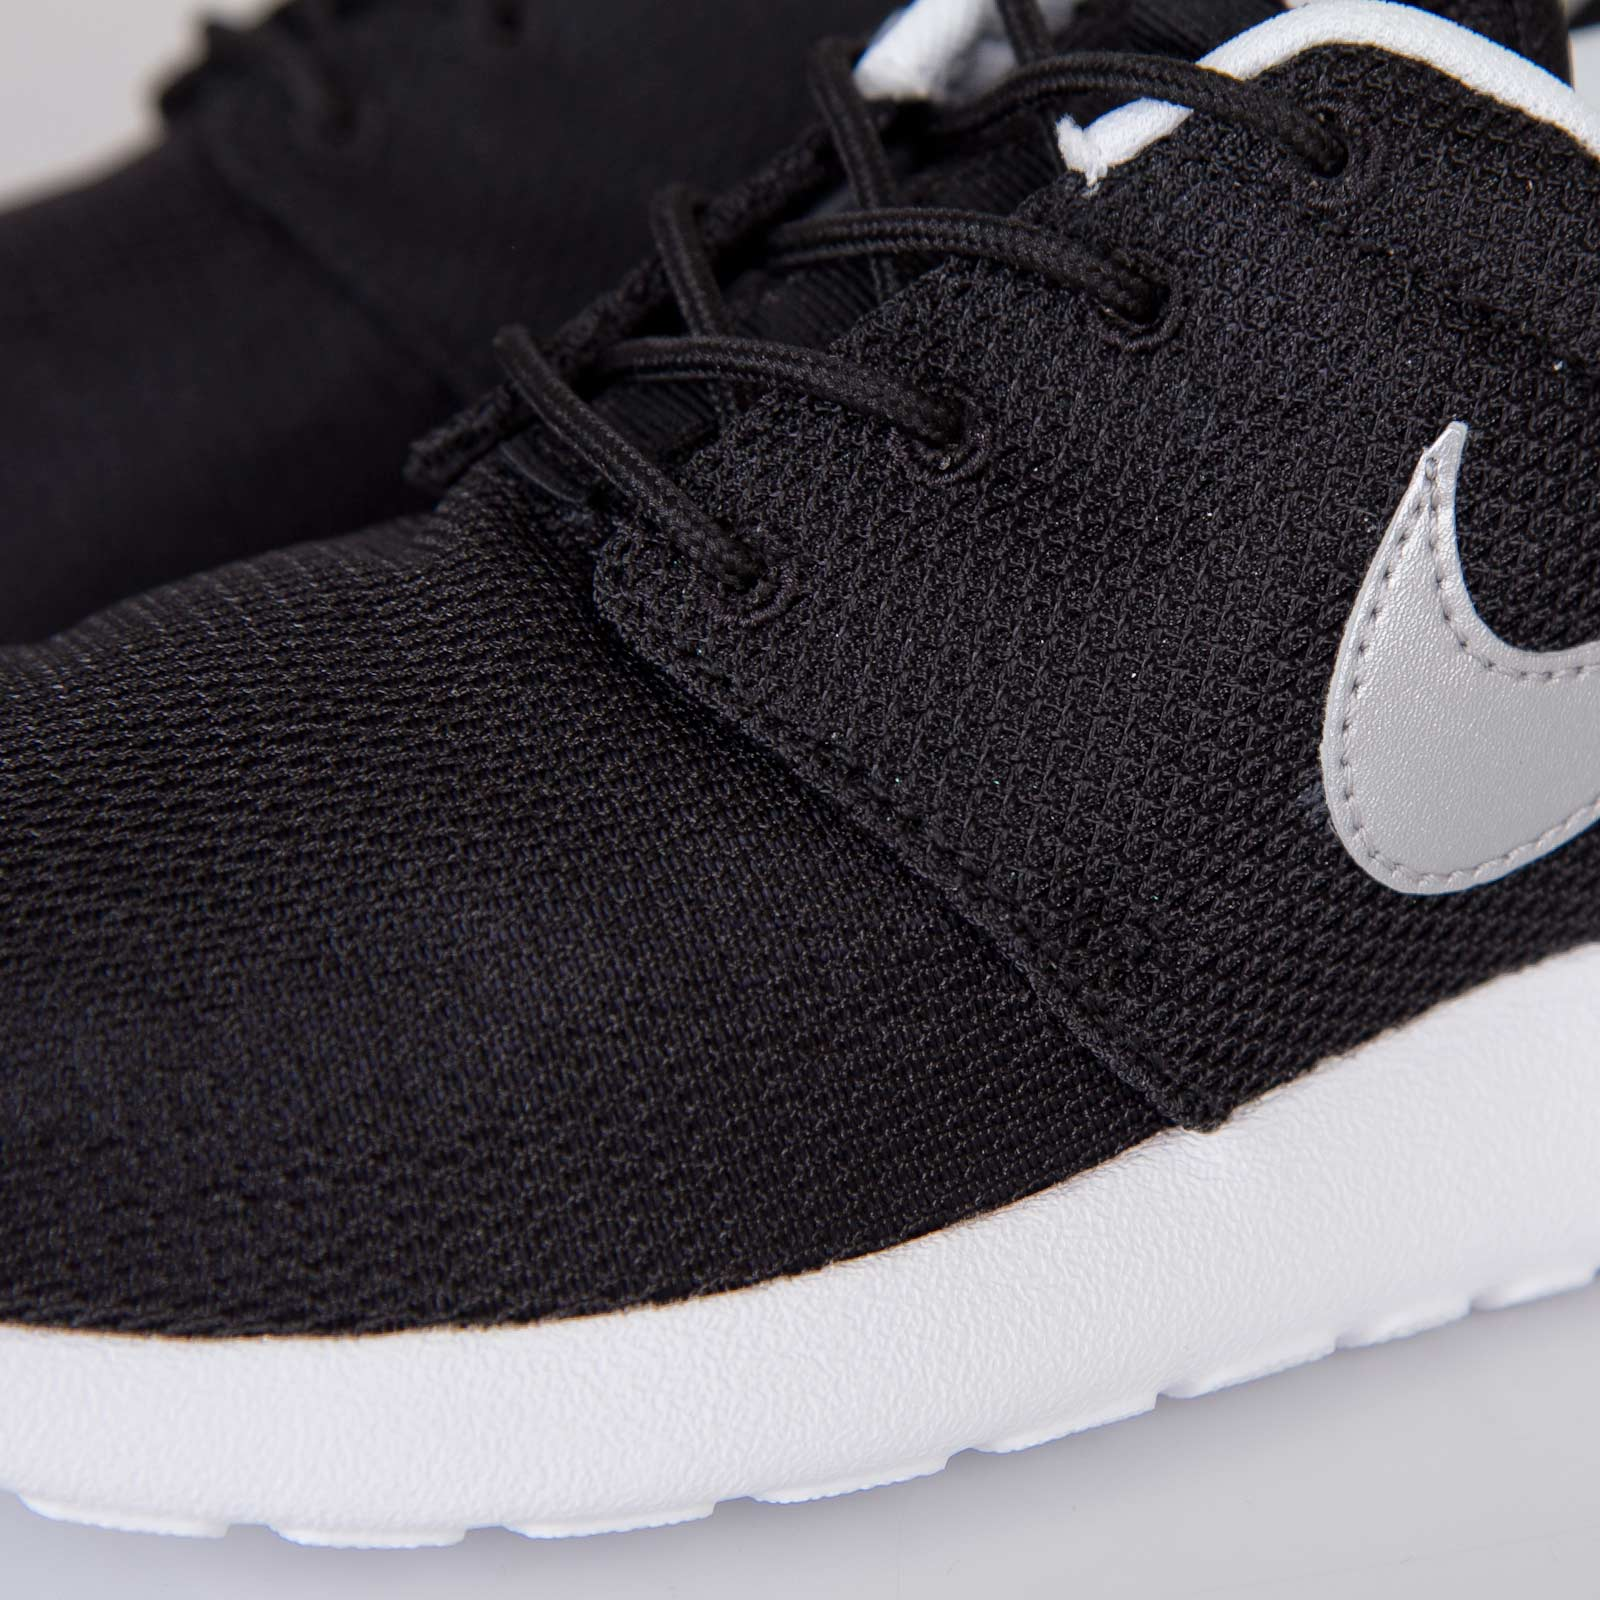 separation shoes b0c30 0fb03 Nike Roshe Run (GS) - 599728-007 - Sneakersnstuff   sneakers   streetwear  online since 1999